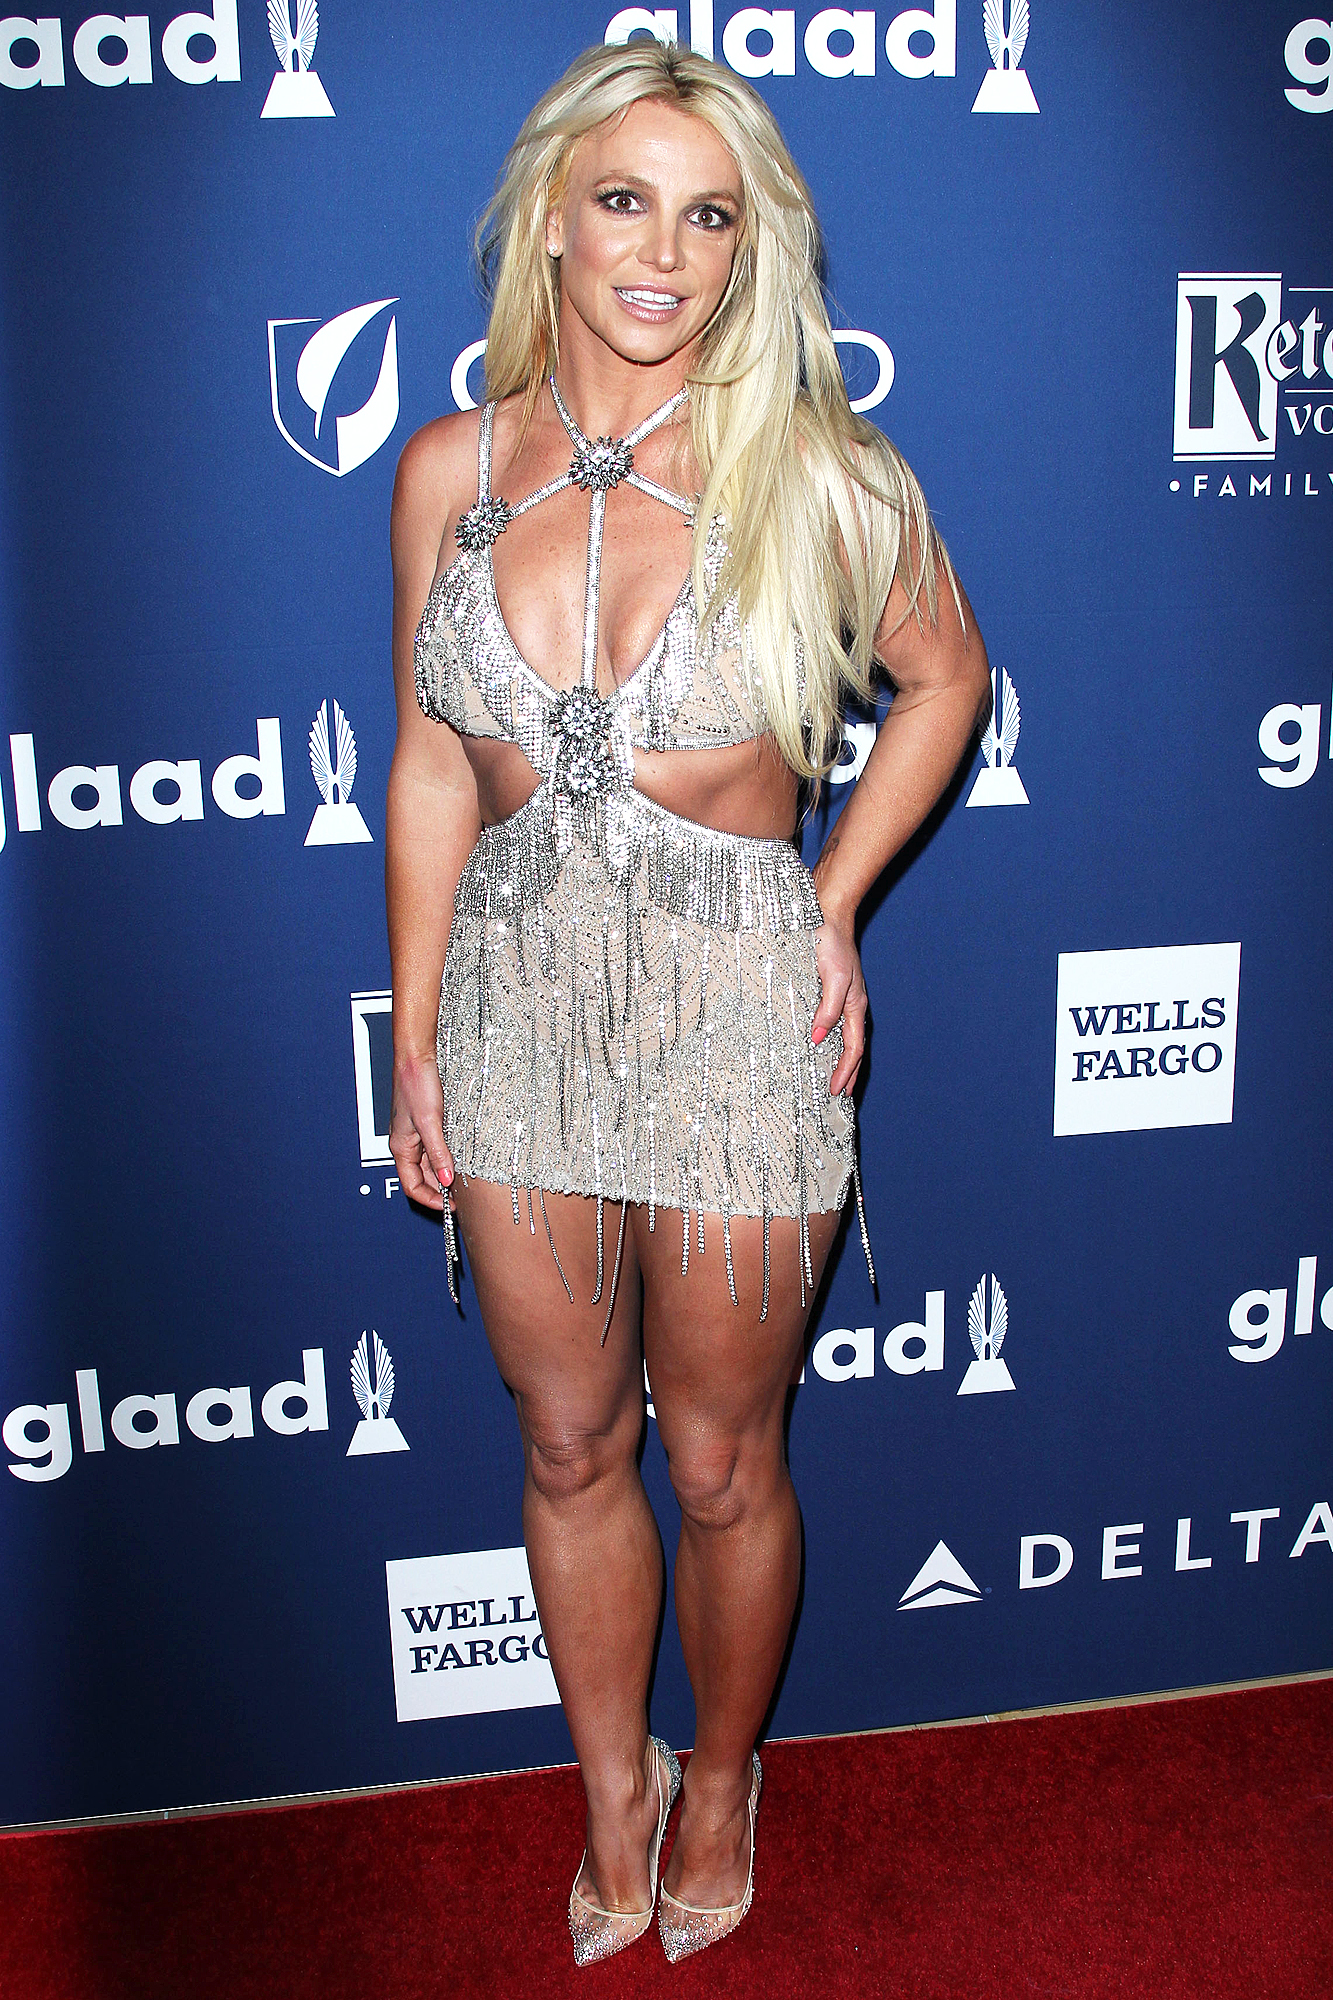 29th Annual GLAAD Media Awards - Los Angeles